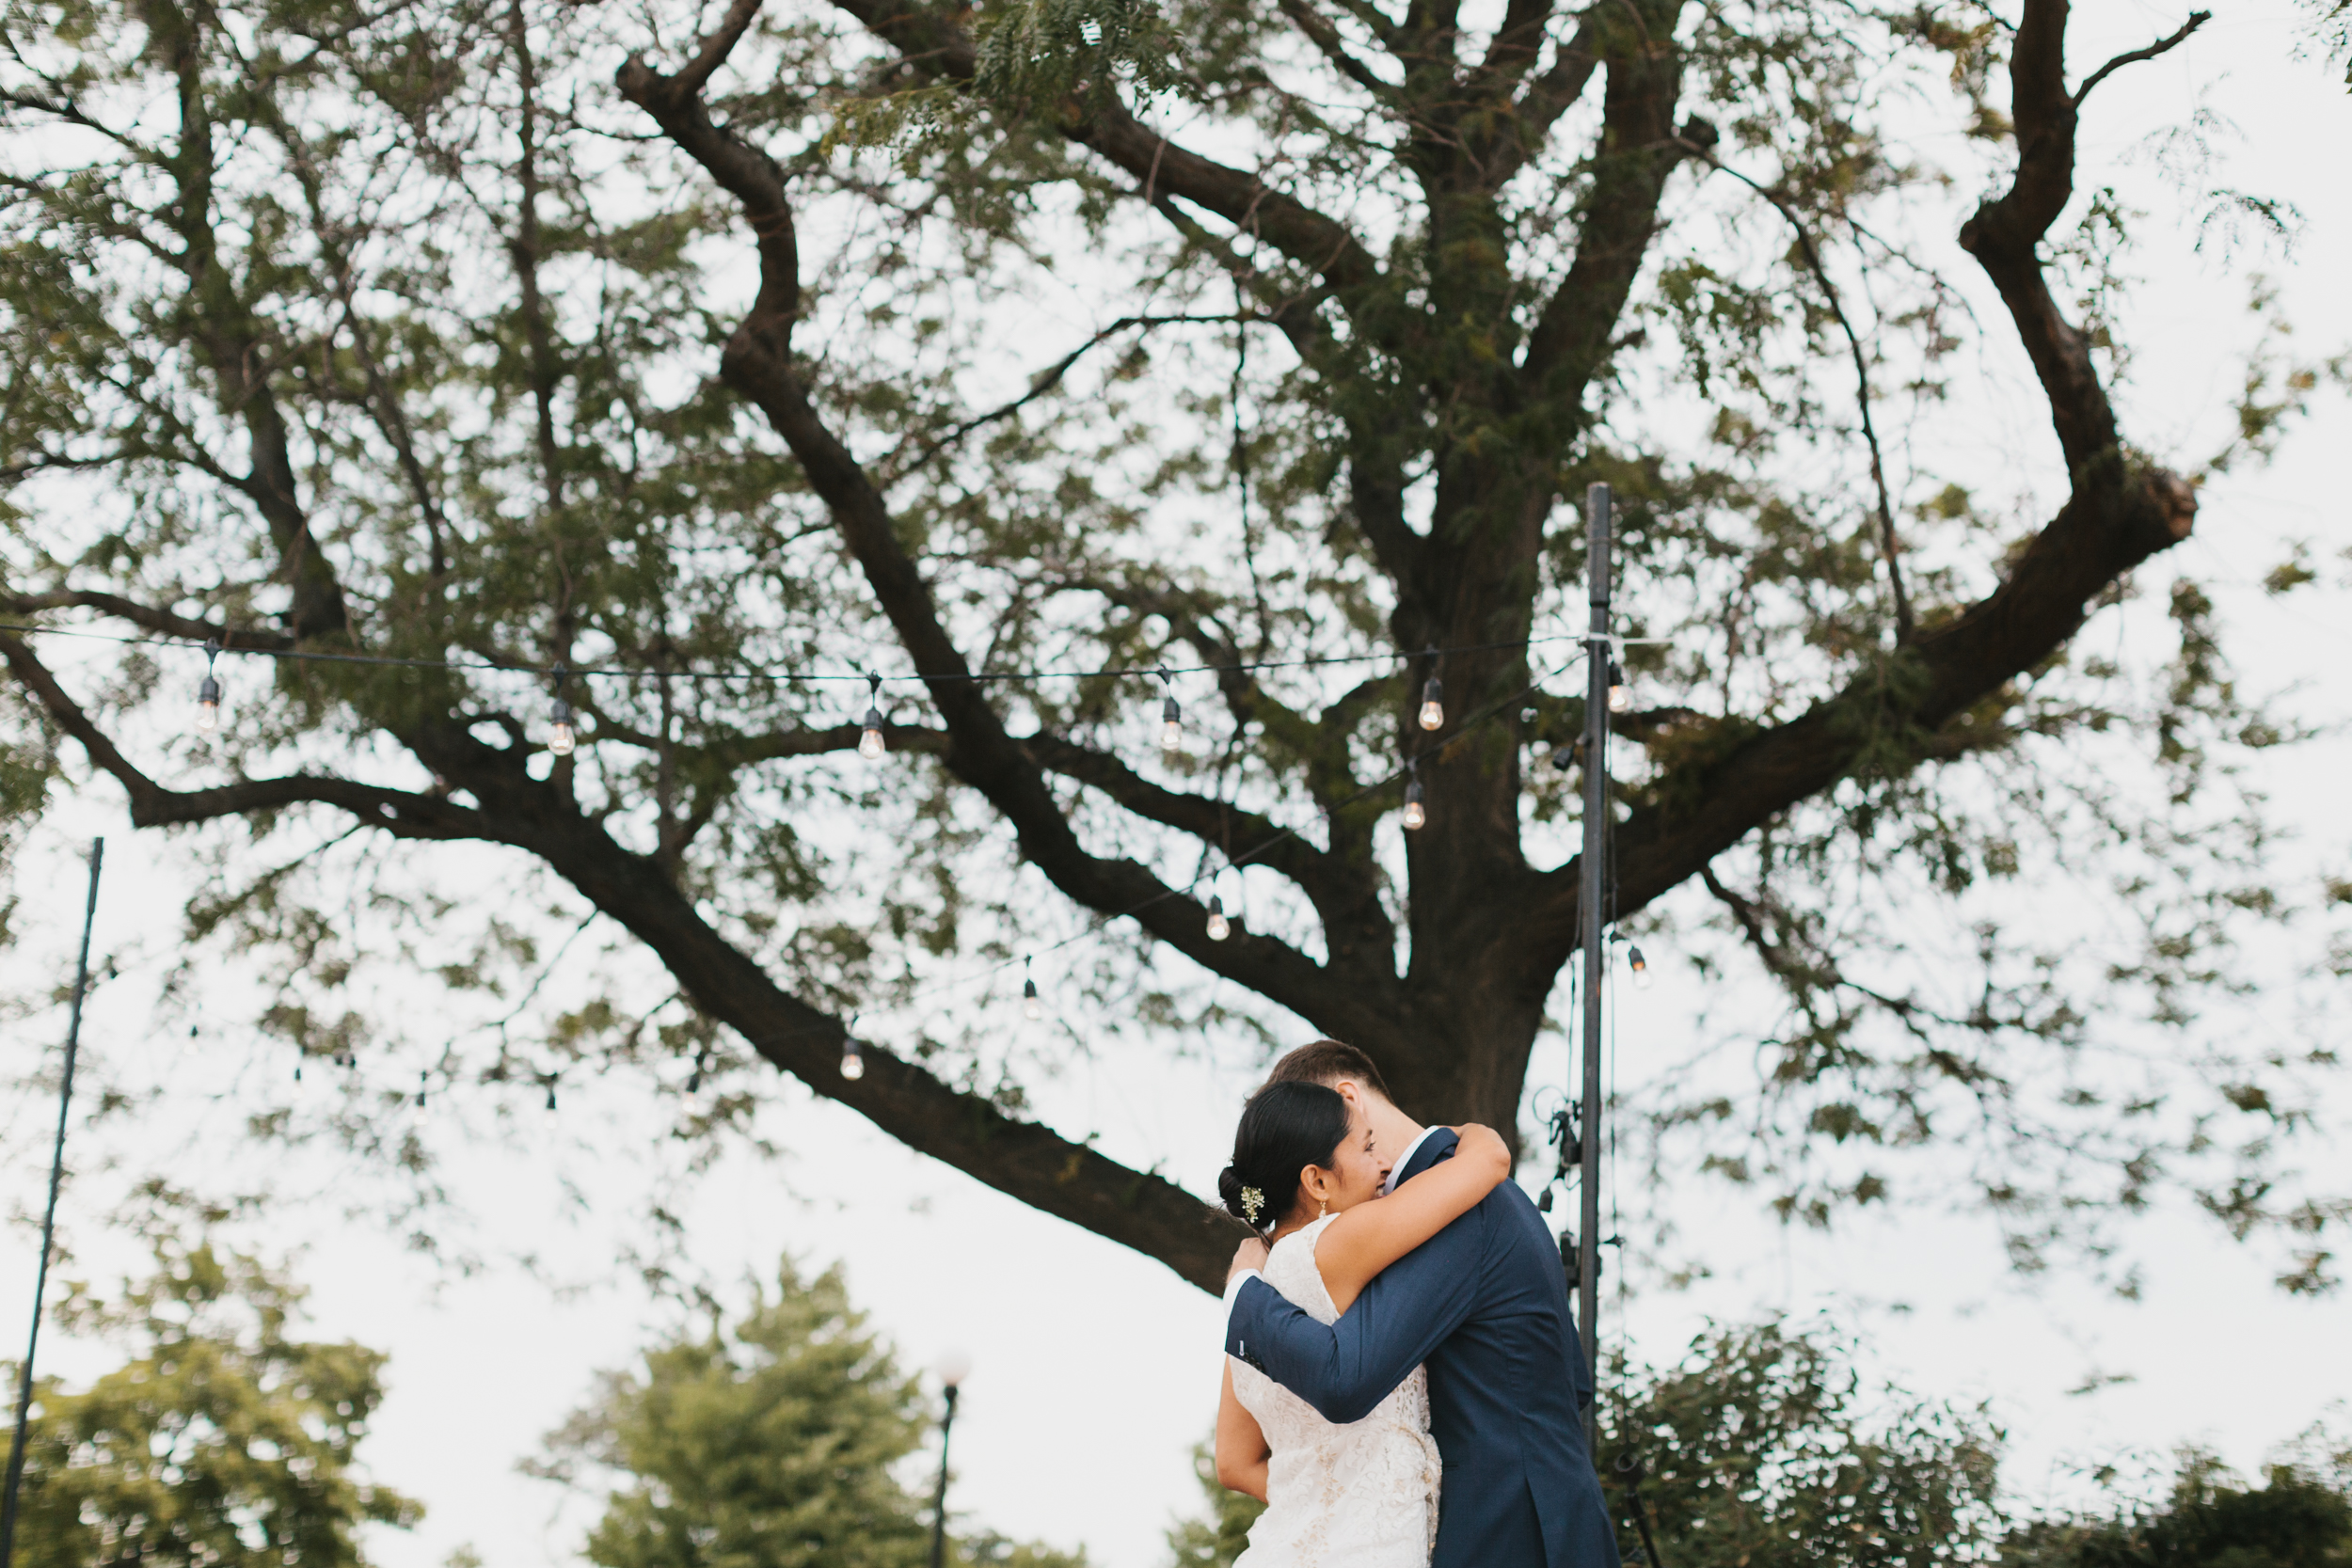 Detroit Lifestyle Wedding Photographer Mae Stier-040.jpg